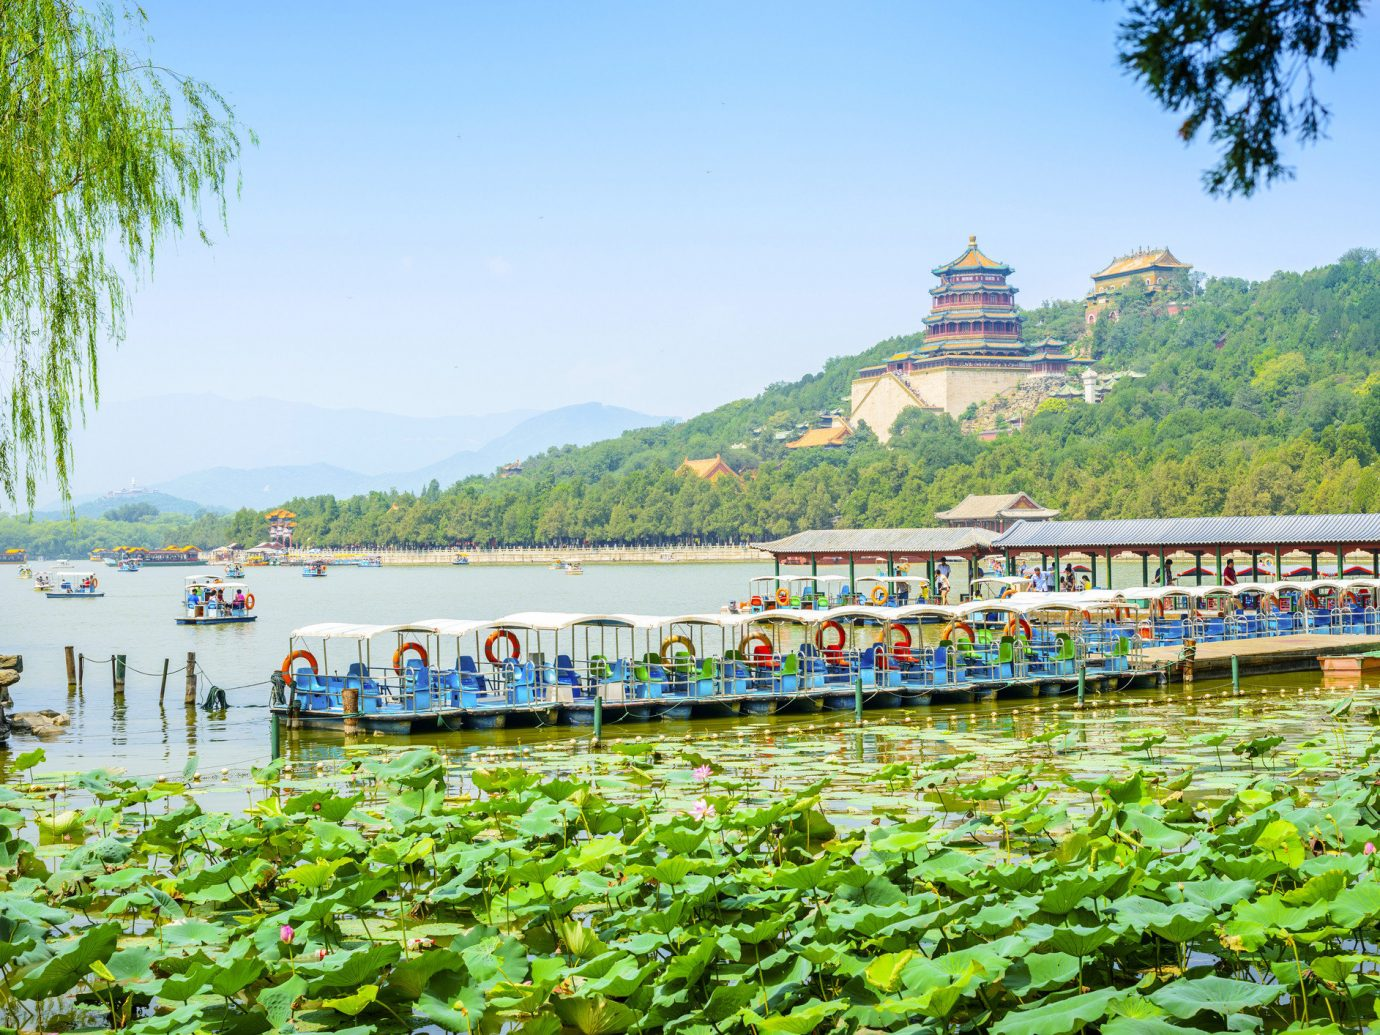 Trip Ideas outdoor sky tree grass River tourism vacation rural area Coast agriculture Sea vehicle flower traveling